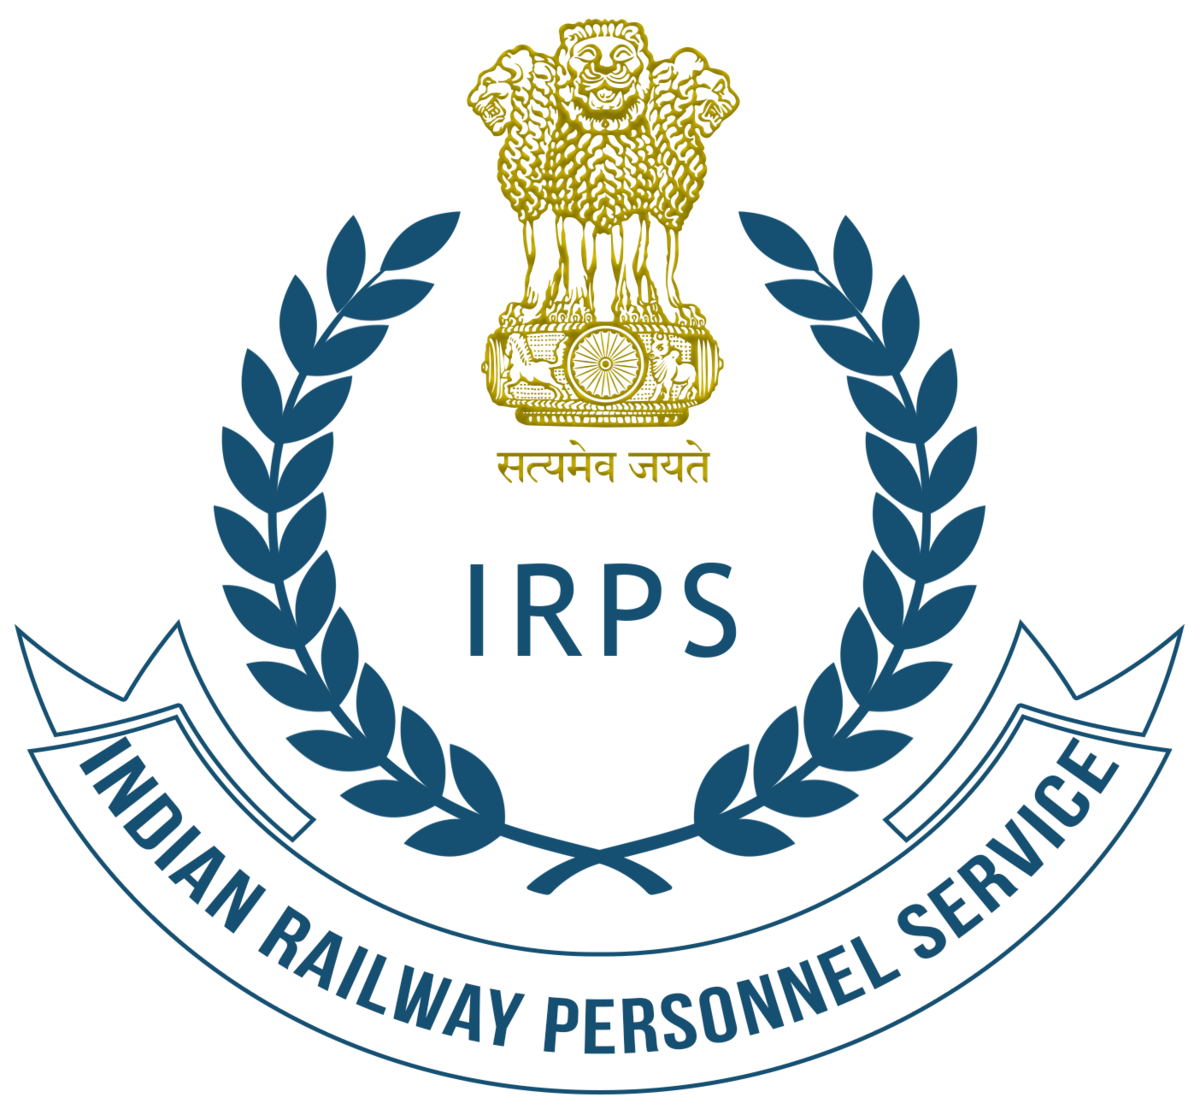 Indian Railway Personnel Service - Wikipedia